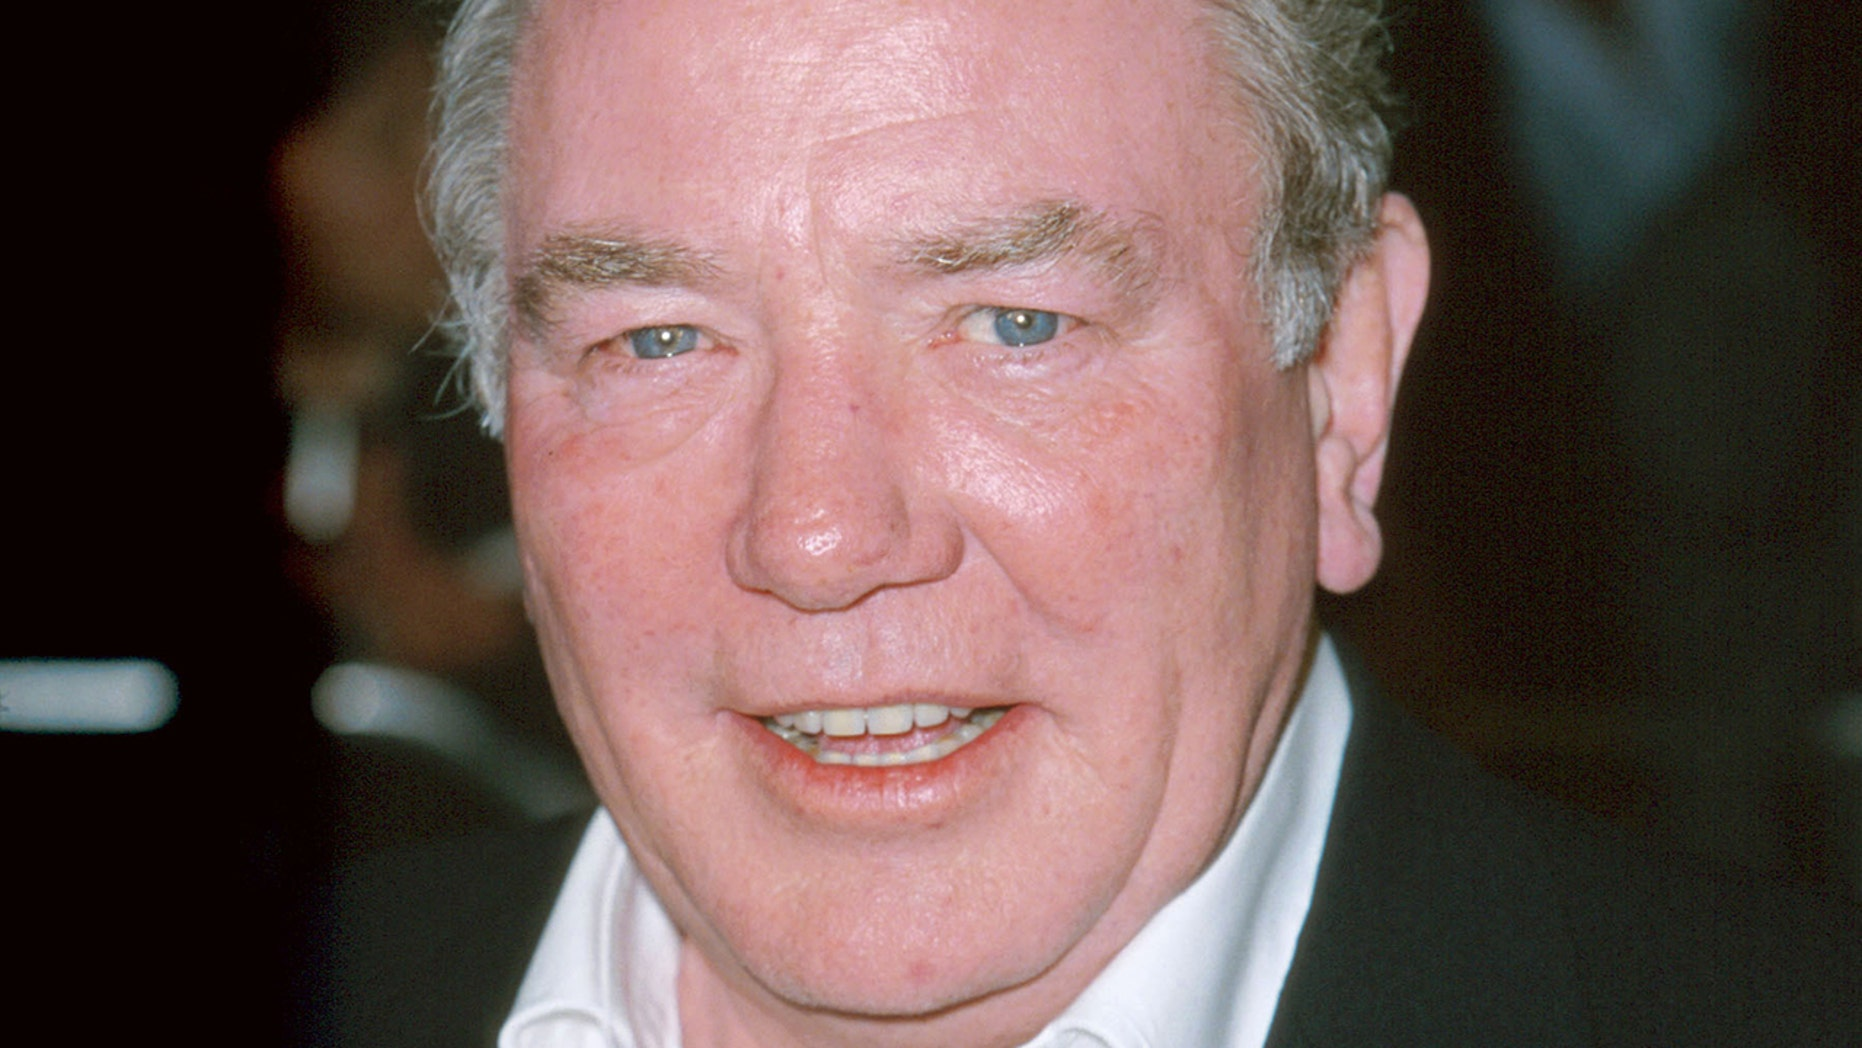 Albert Finney has died aged 82